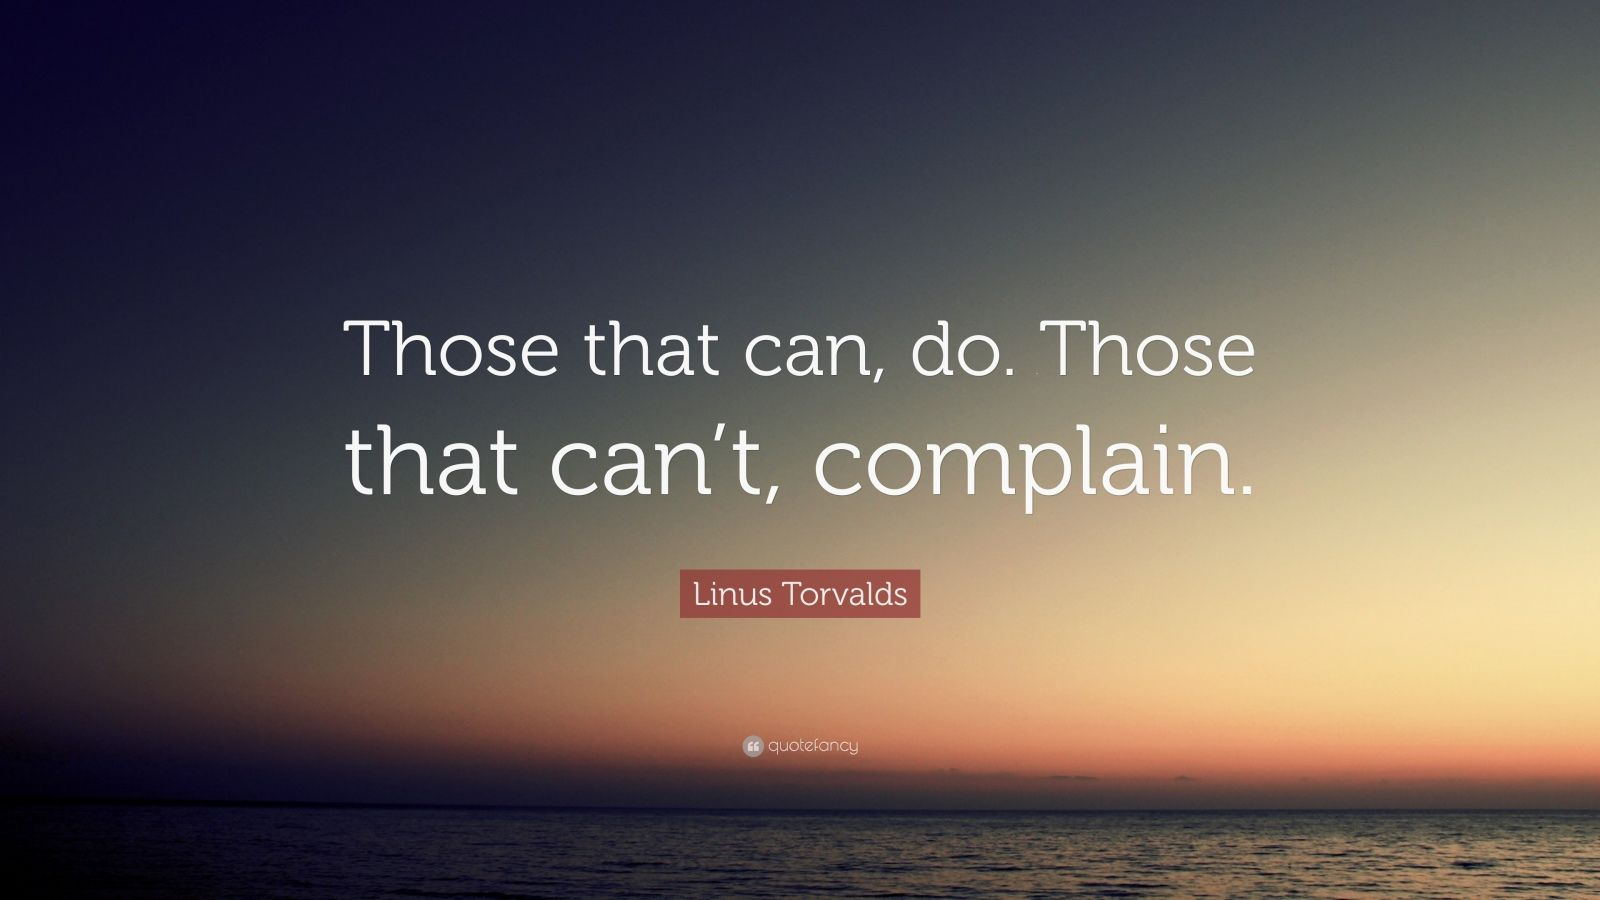 """Linus Torvalds Quote: """"Those that can, do. Those that can't, complain."""""""